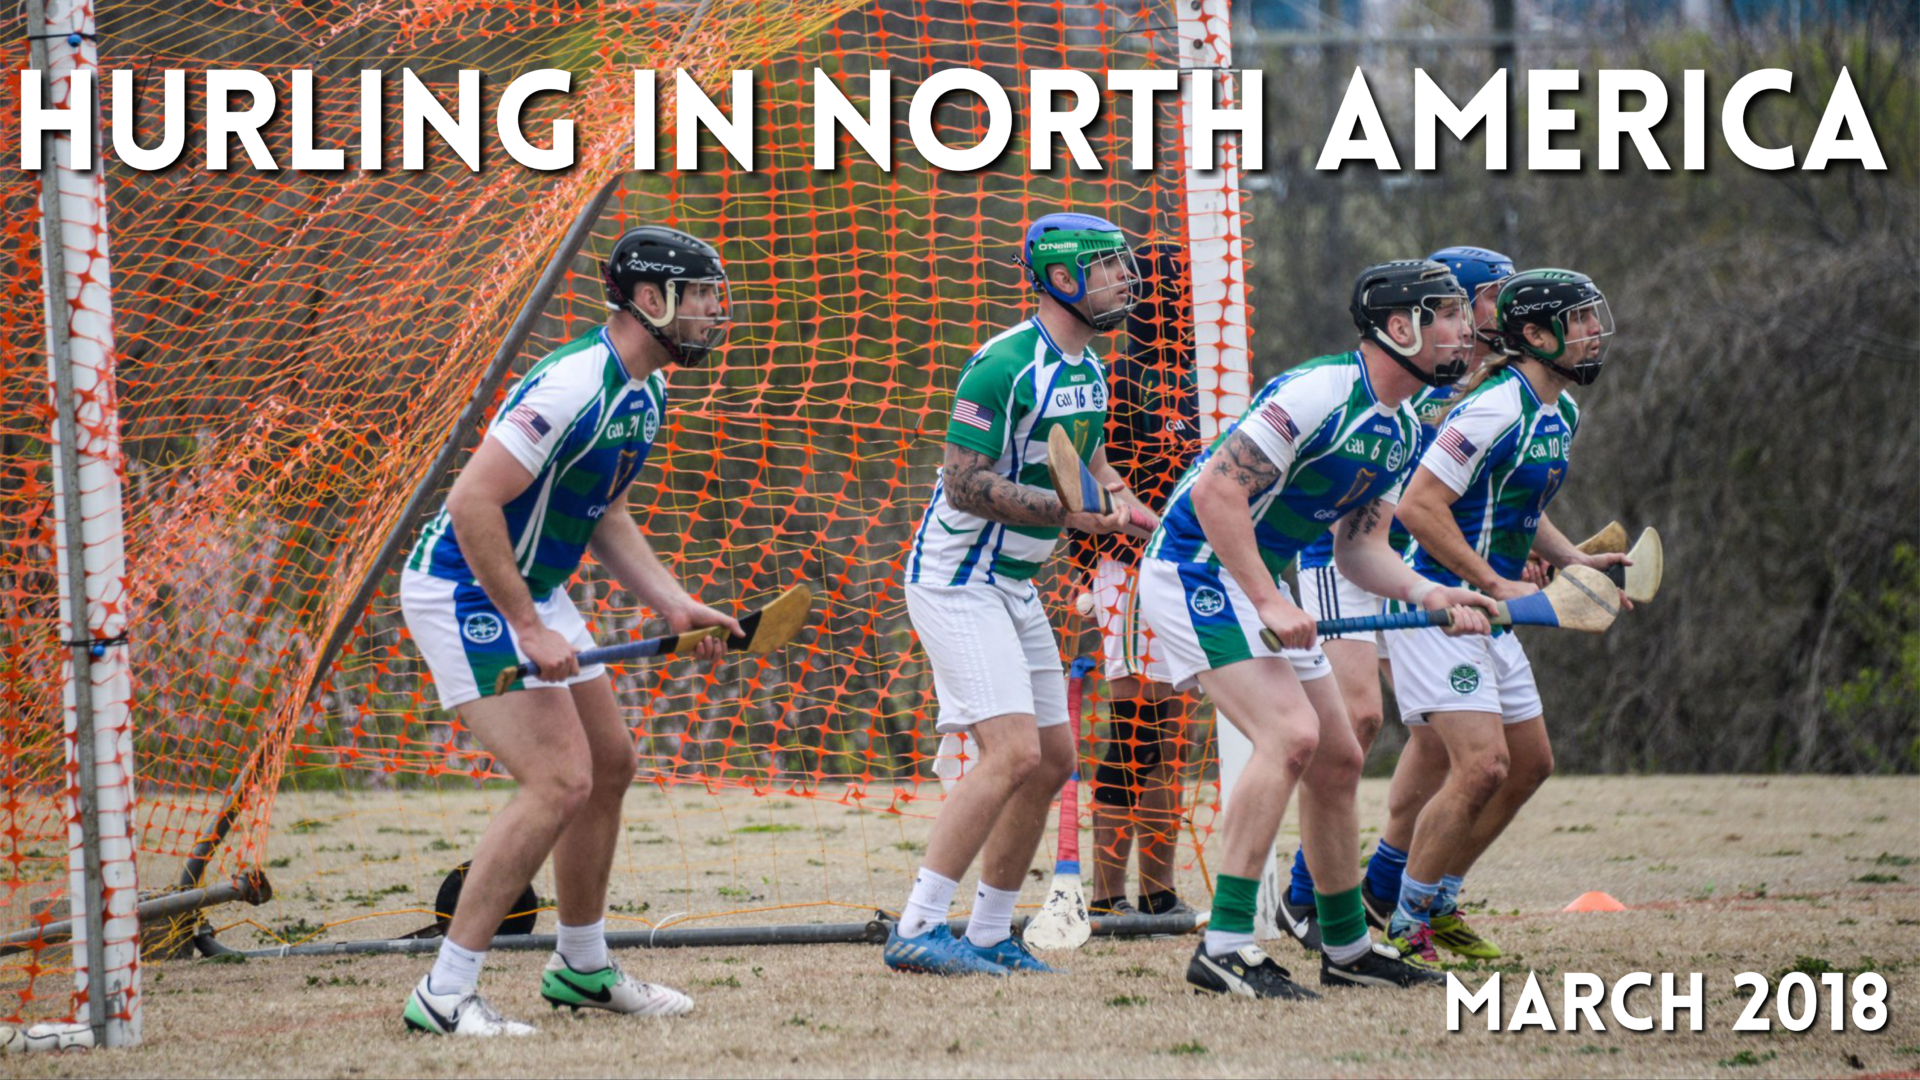 Hurling in North America March 2018